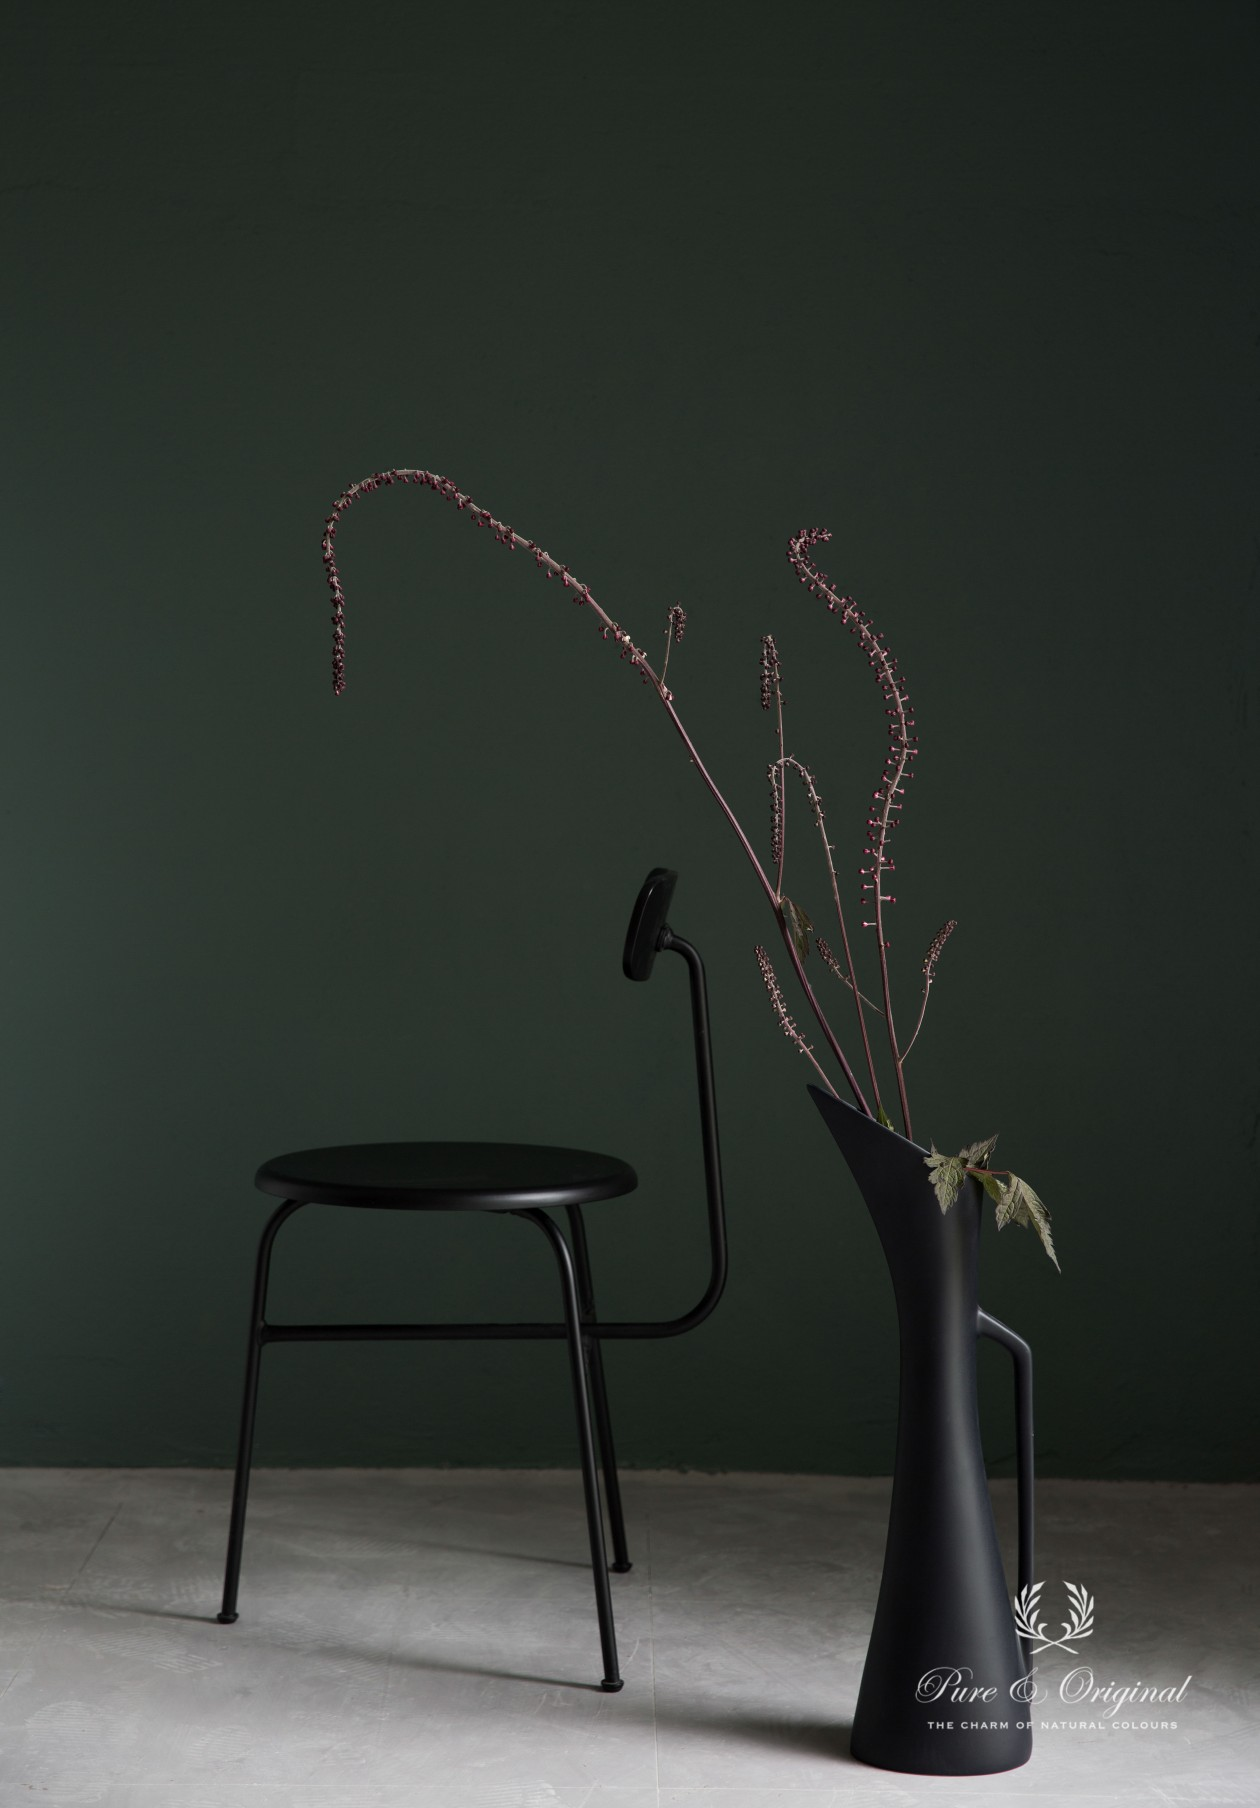 w3_Pure_Orignal_Classico_krijtverf_chalk_based_paint_color_Dark_Forrest.jpg